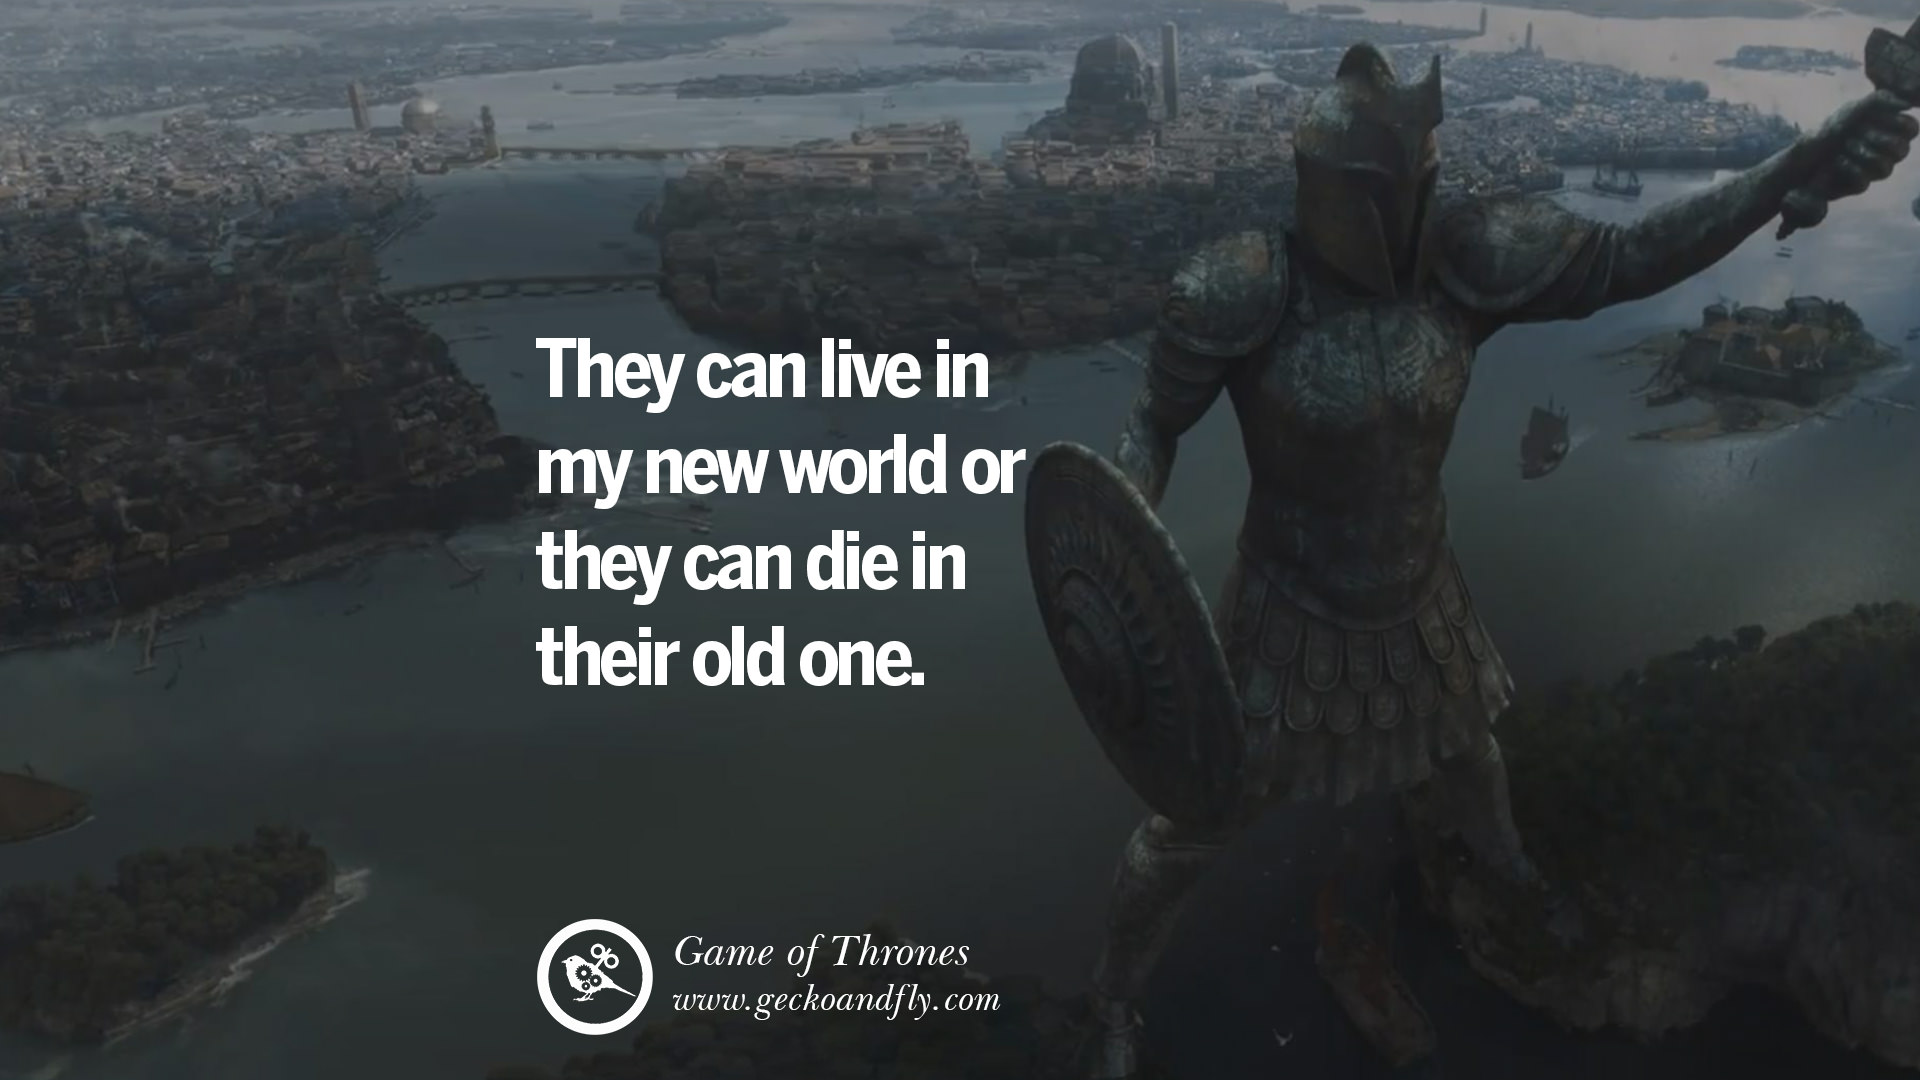 Tyrion Lannister Quotes Hd Wallpaper Hbo Game Of Thrones Quotes Quotesgram